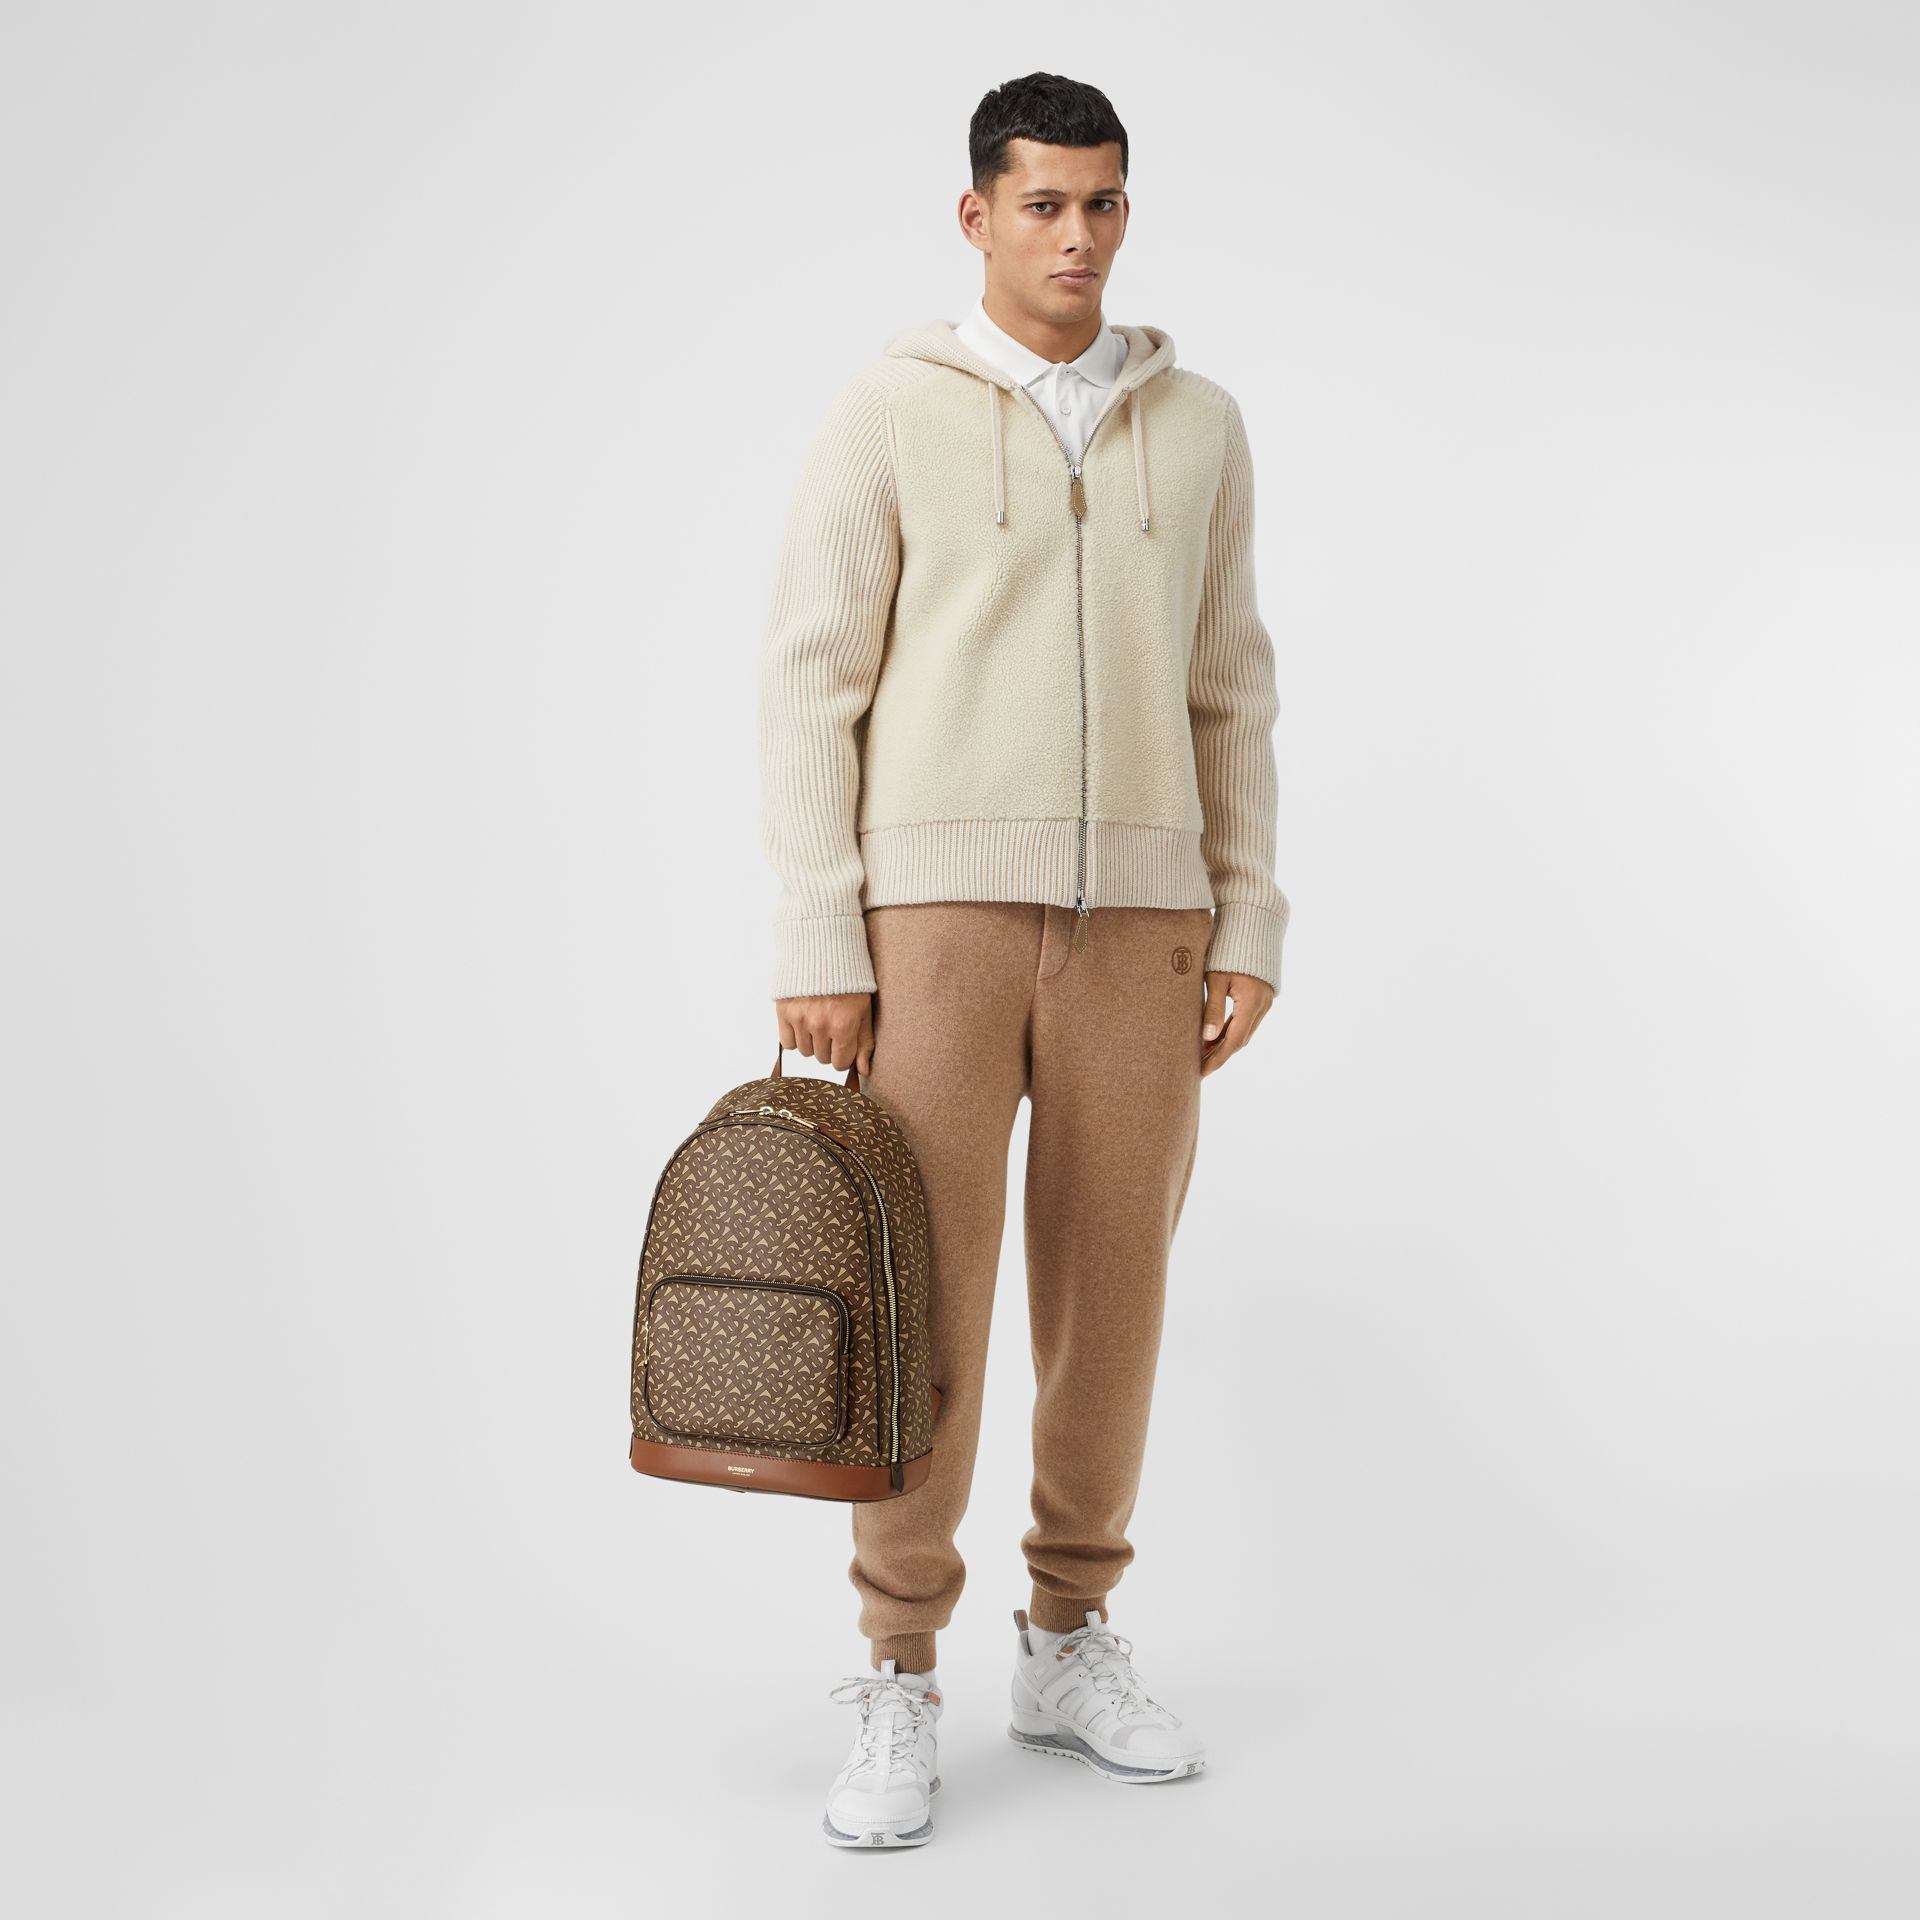 Monogram Print E-canvas and Leather Backpack in Bridle Brown - Men | Burberry - gallery image 10